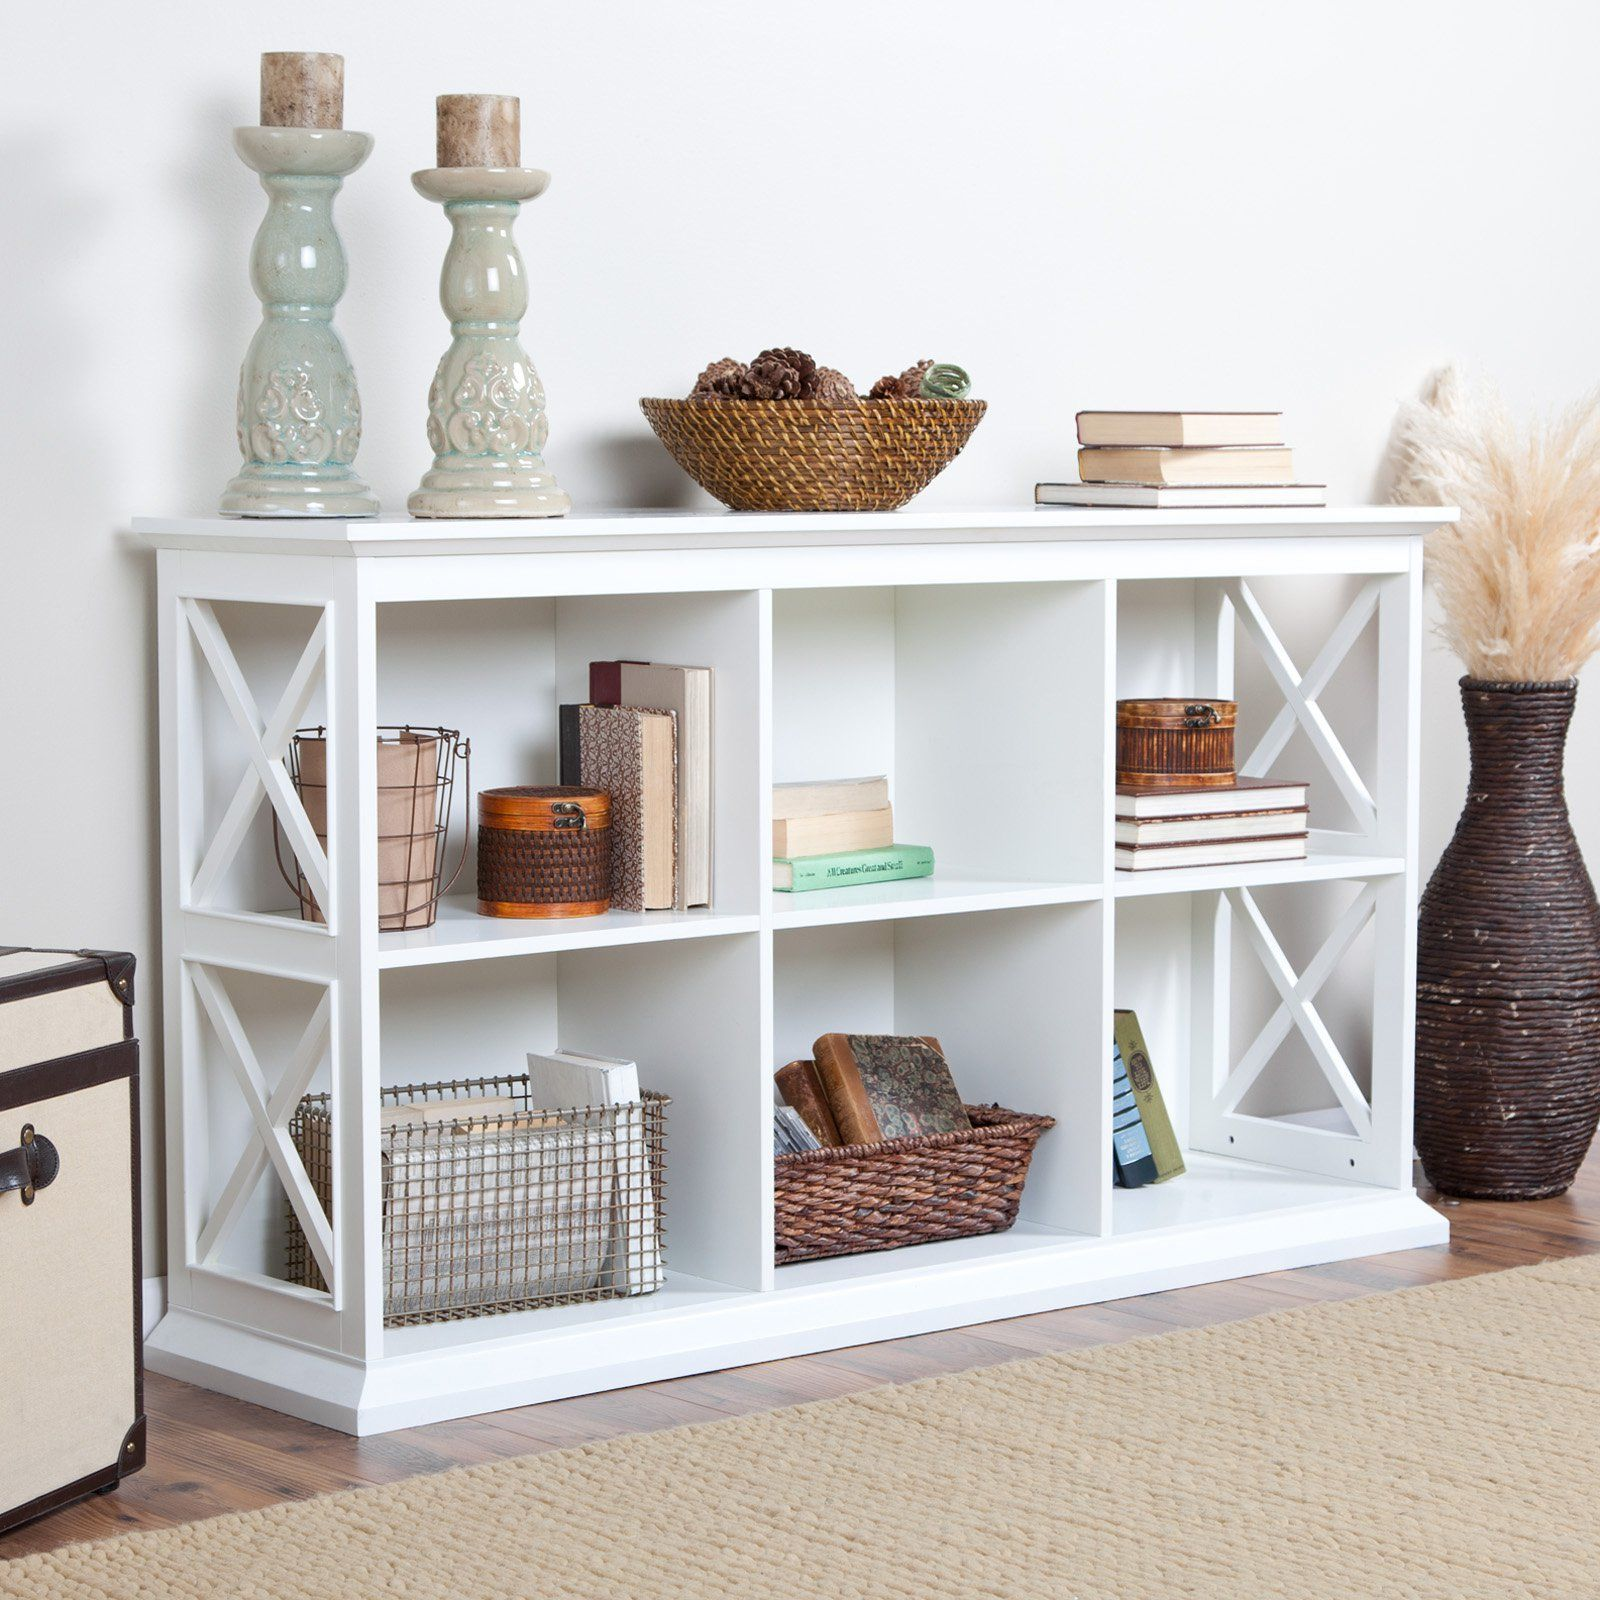 Belham Living Hampton Tv Stand Bookcase White A Hayneedle Exclusive The Offers Clic Style That Works